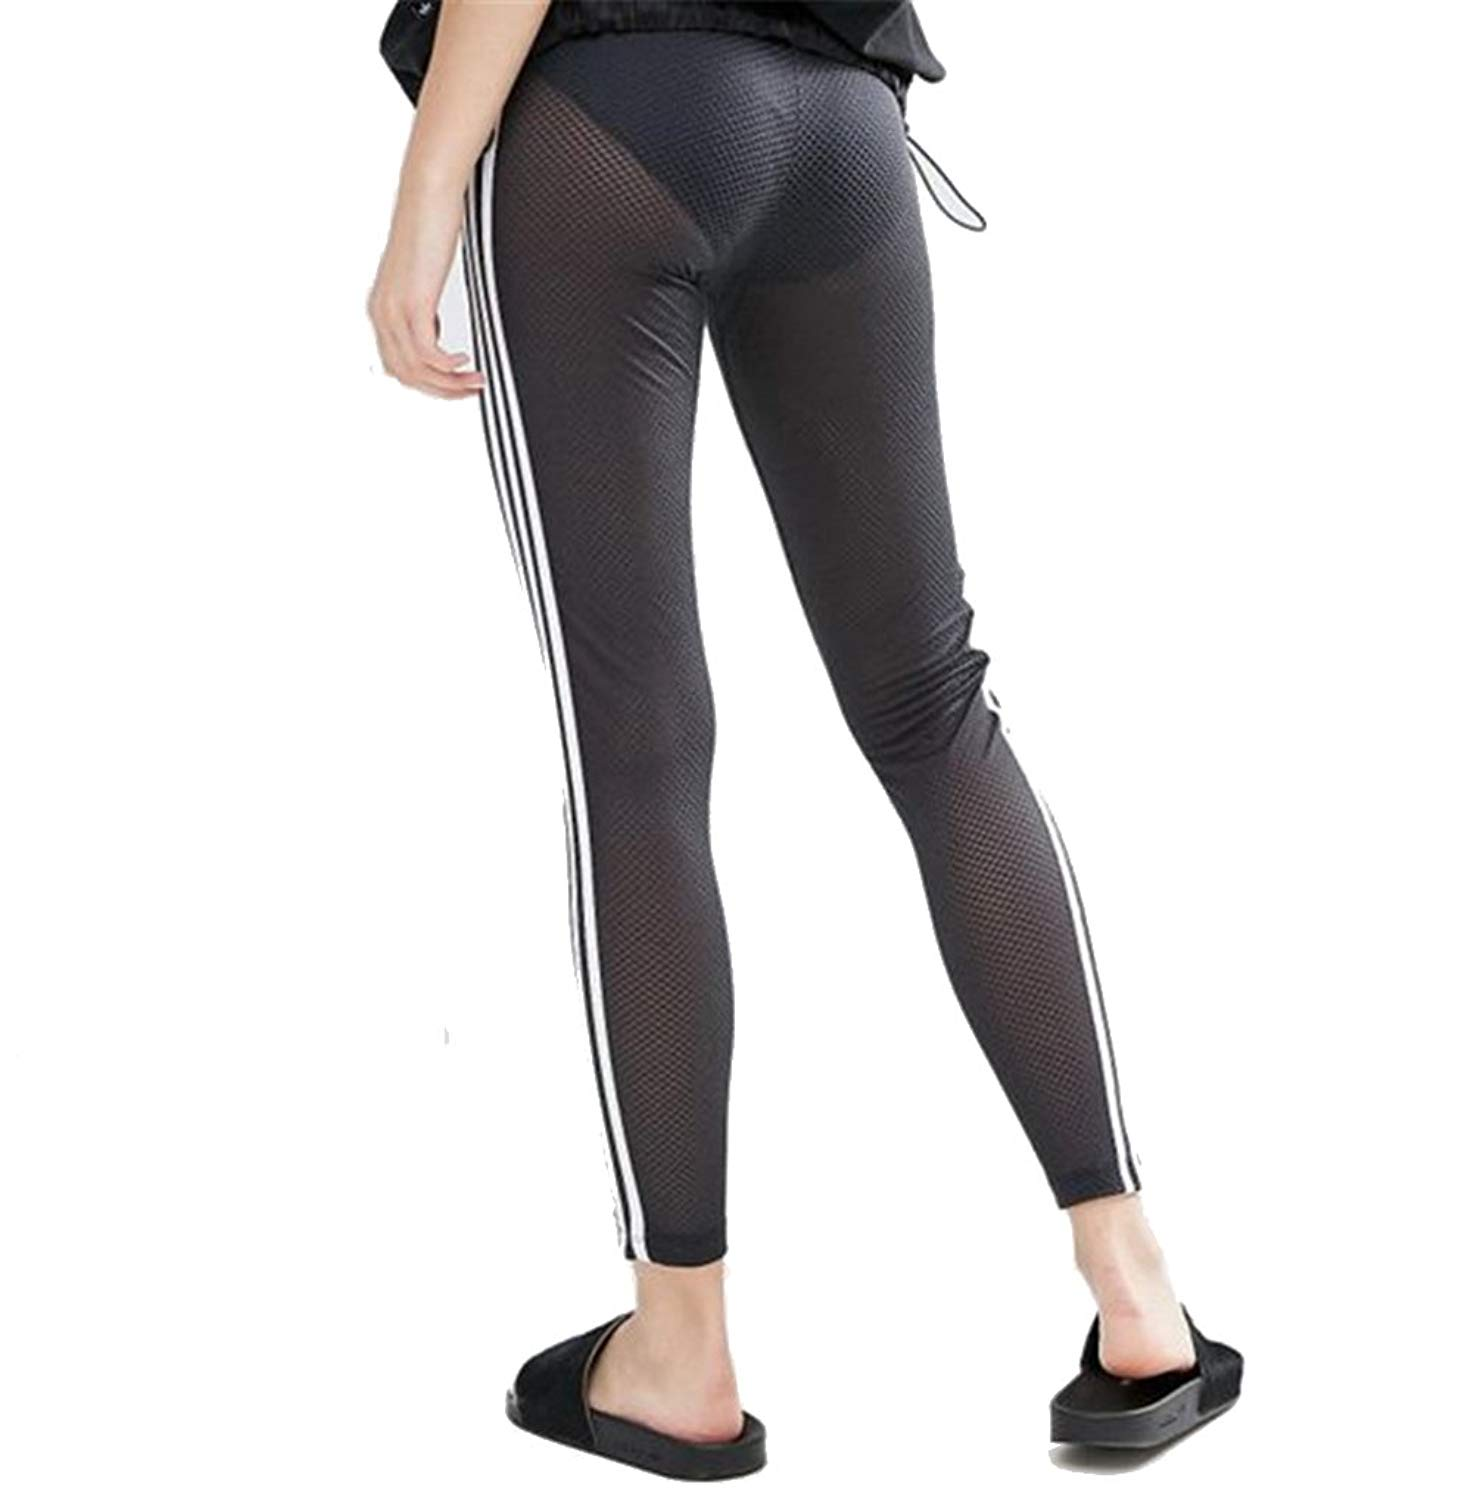 d28c450dd63450 Get Quotations · Sexy Hollow Out Cut Yoga Leggings White Stripes Side Yoga  Pants High Waisted Butt Lift Fitness